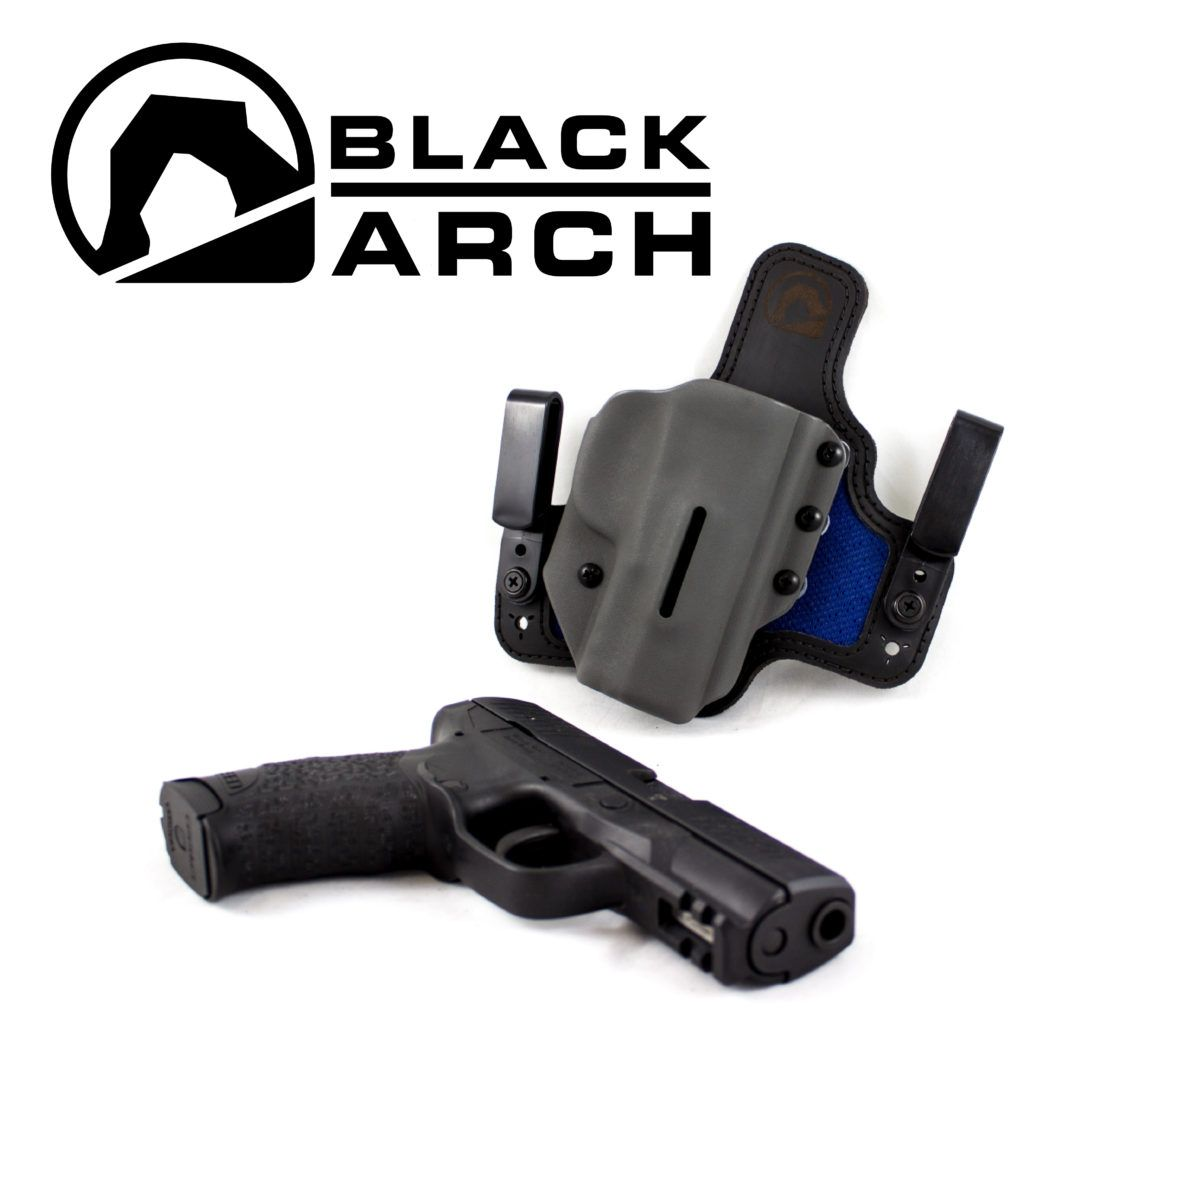 Black Arch Hybrid Holsters with Dri-Matrix Backers